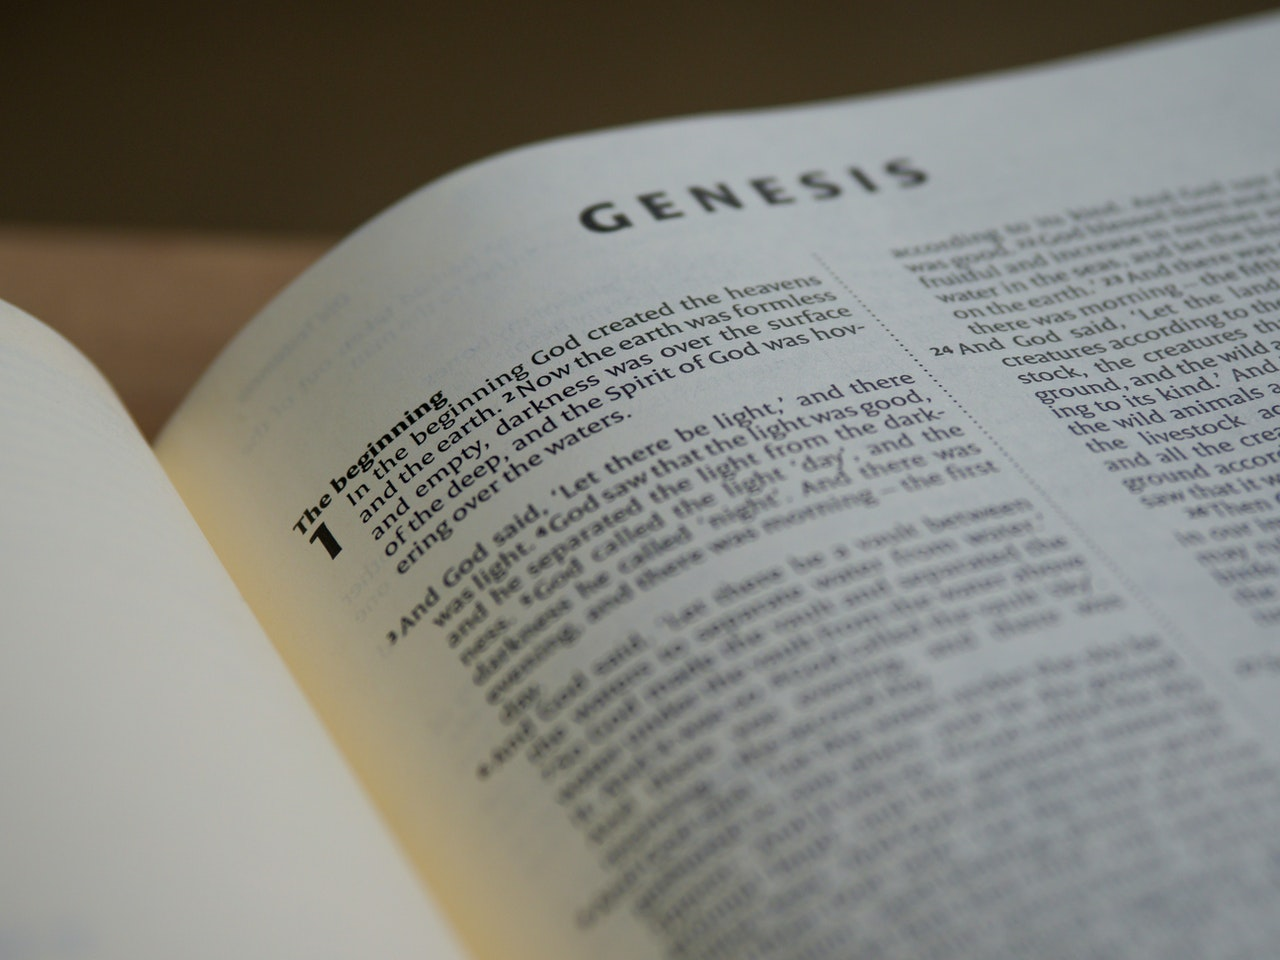 bsf studying book of genesis fall 2020 atozmomm.com